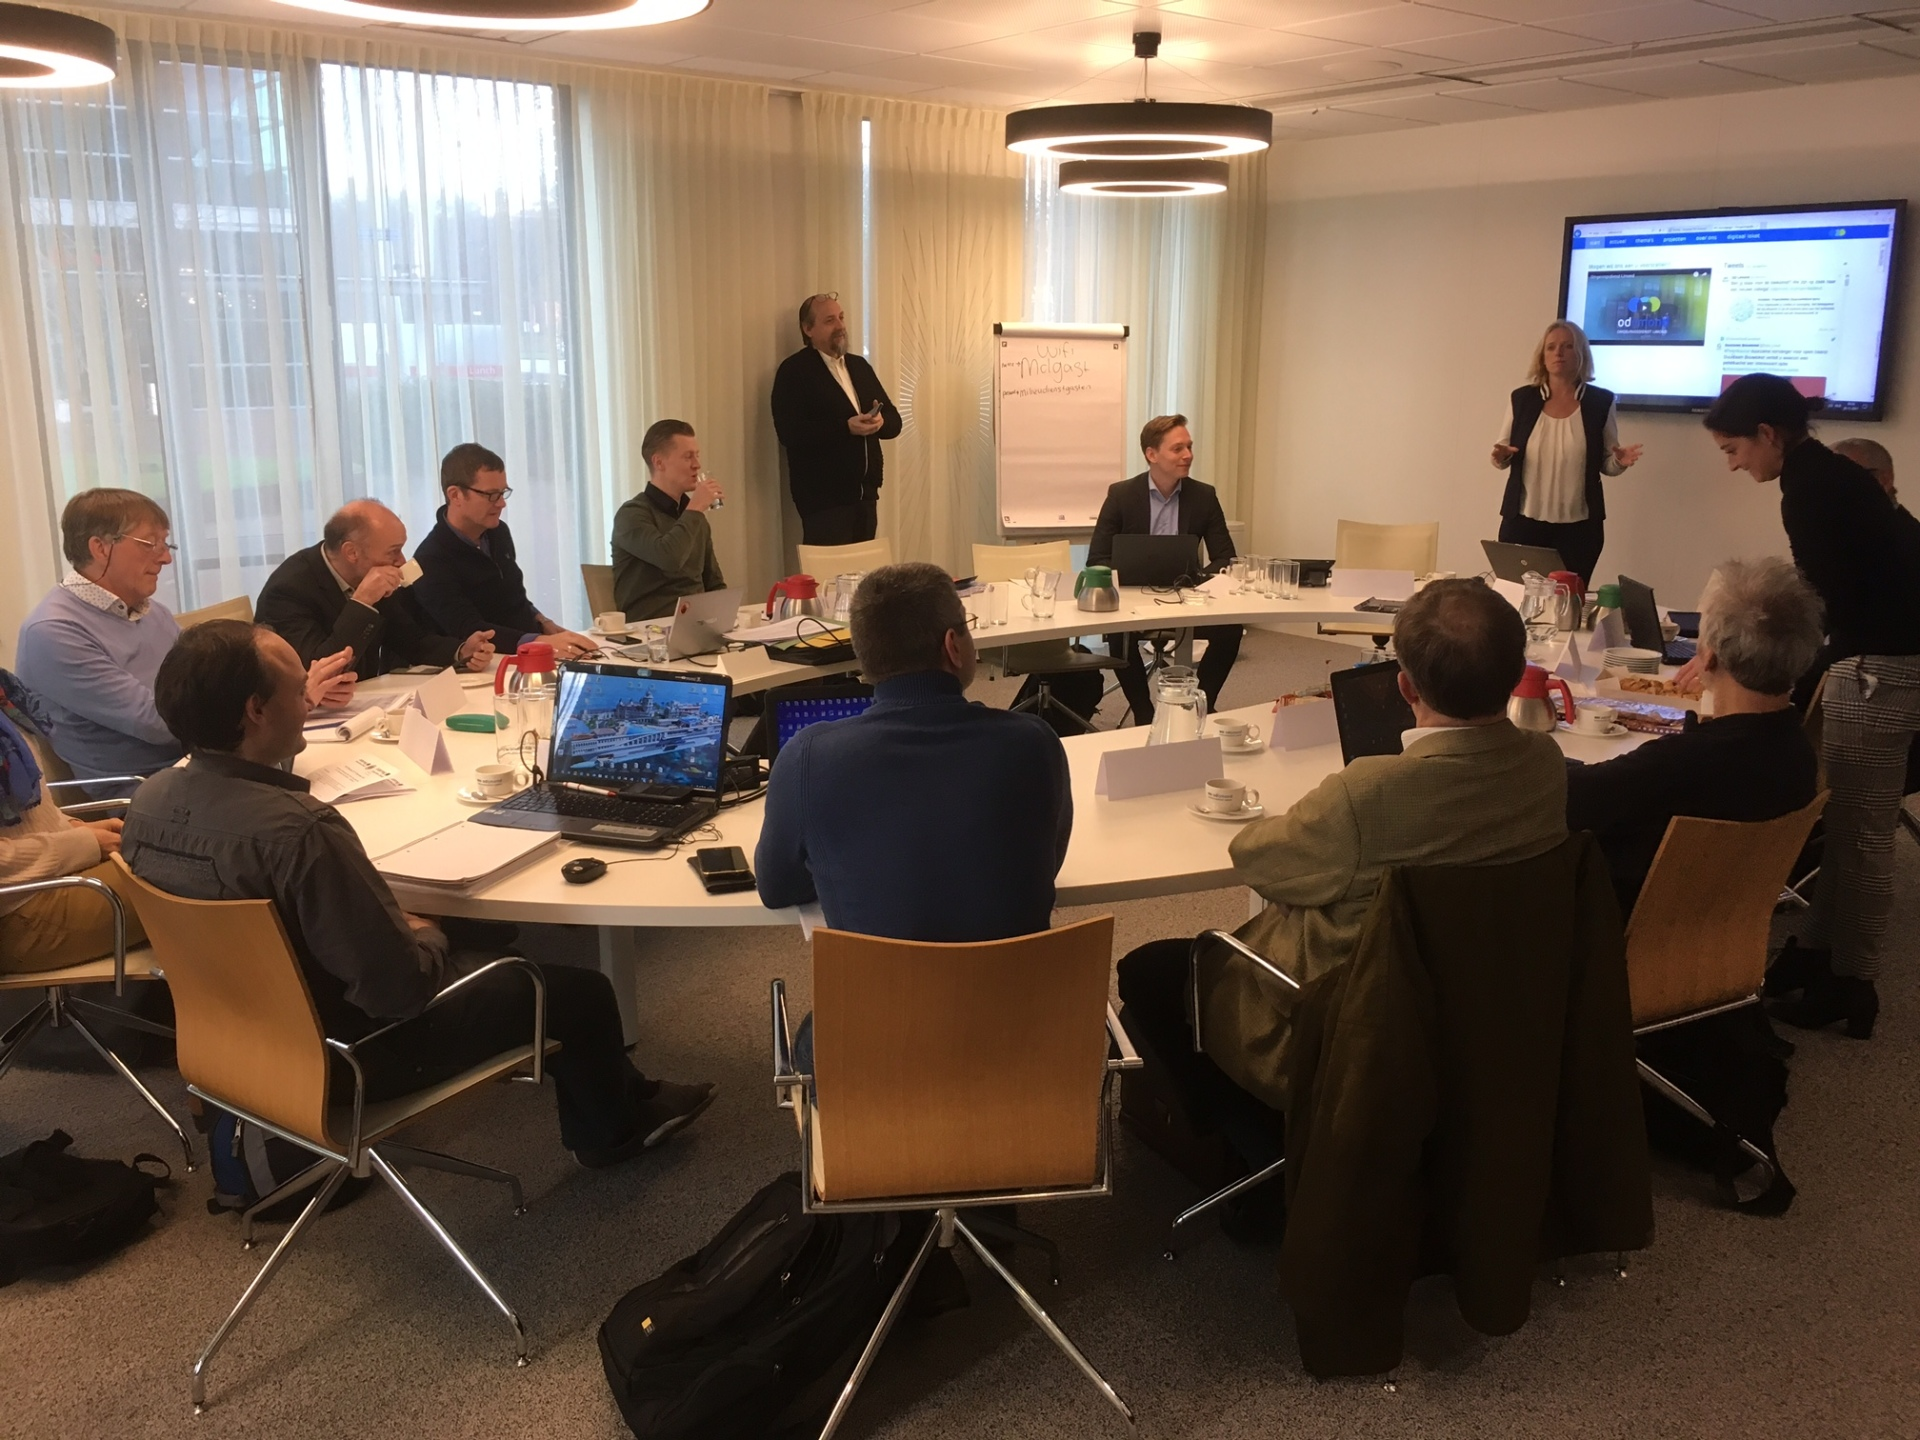 Second project meeting took place in IJmond (NL)